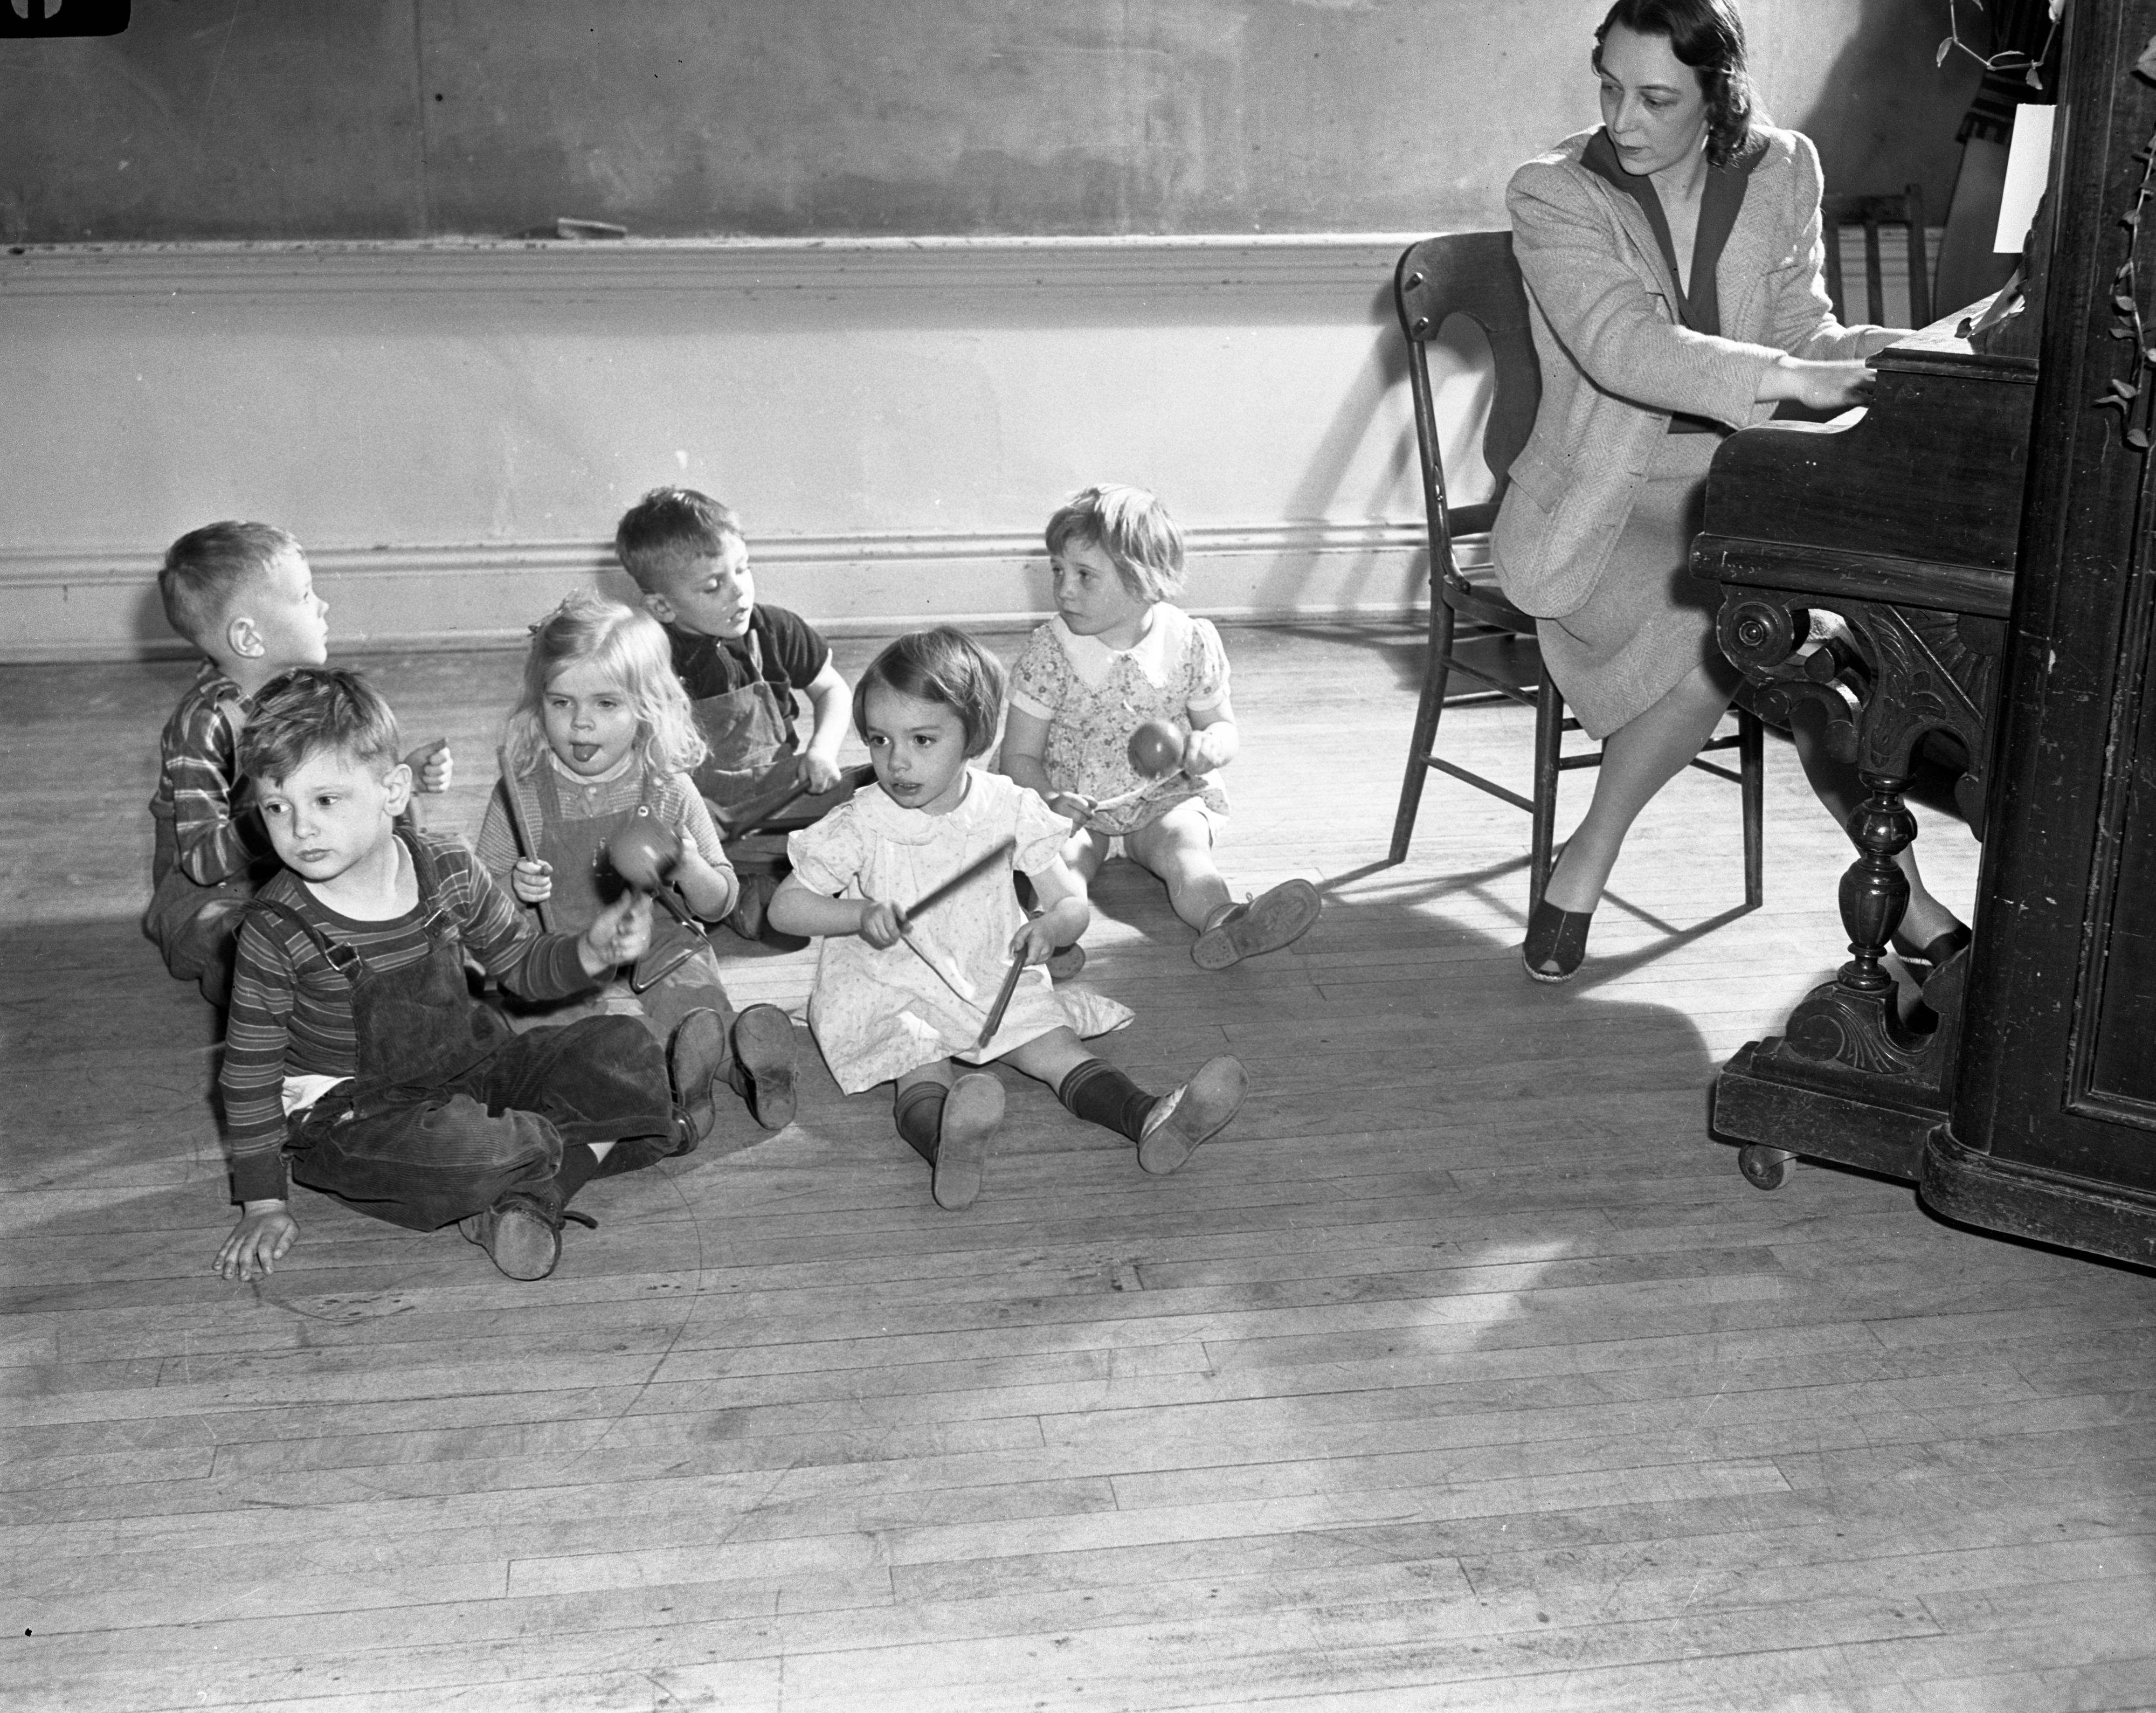 Mrs. Ken Dougherty teaches a rhythm class to defense Children at Perry School's Nursery, March 1942 image